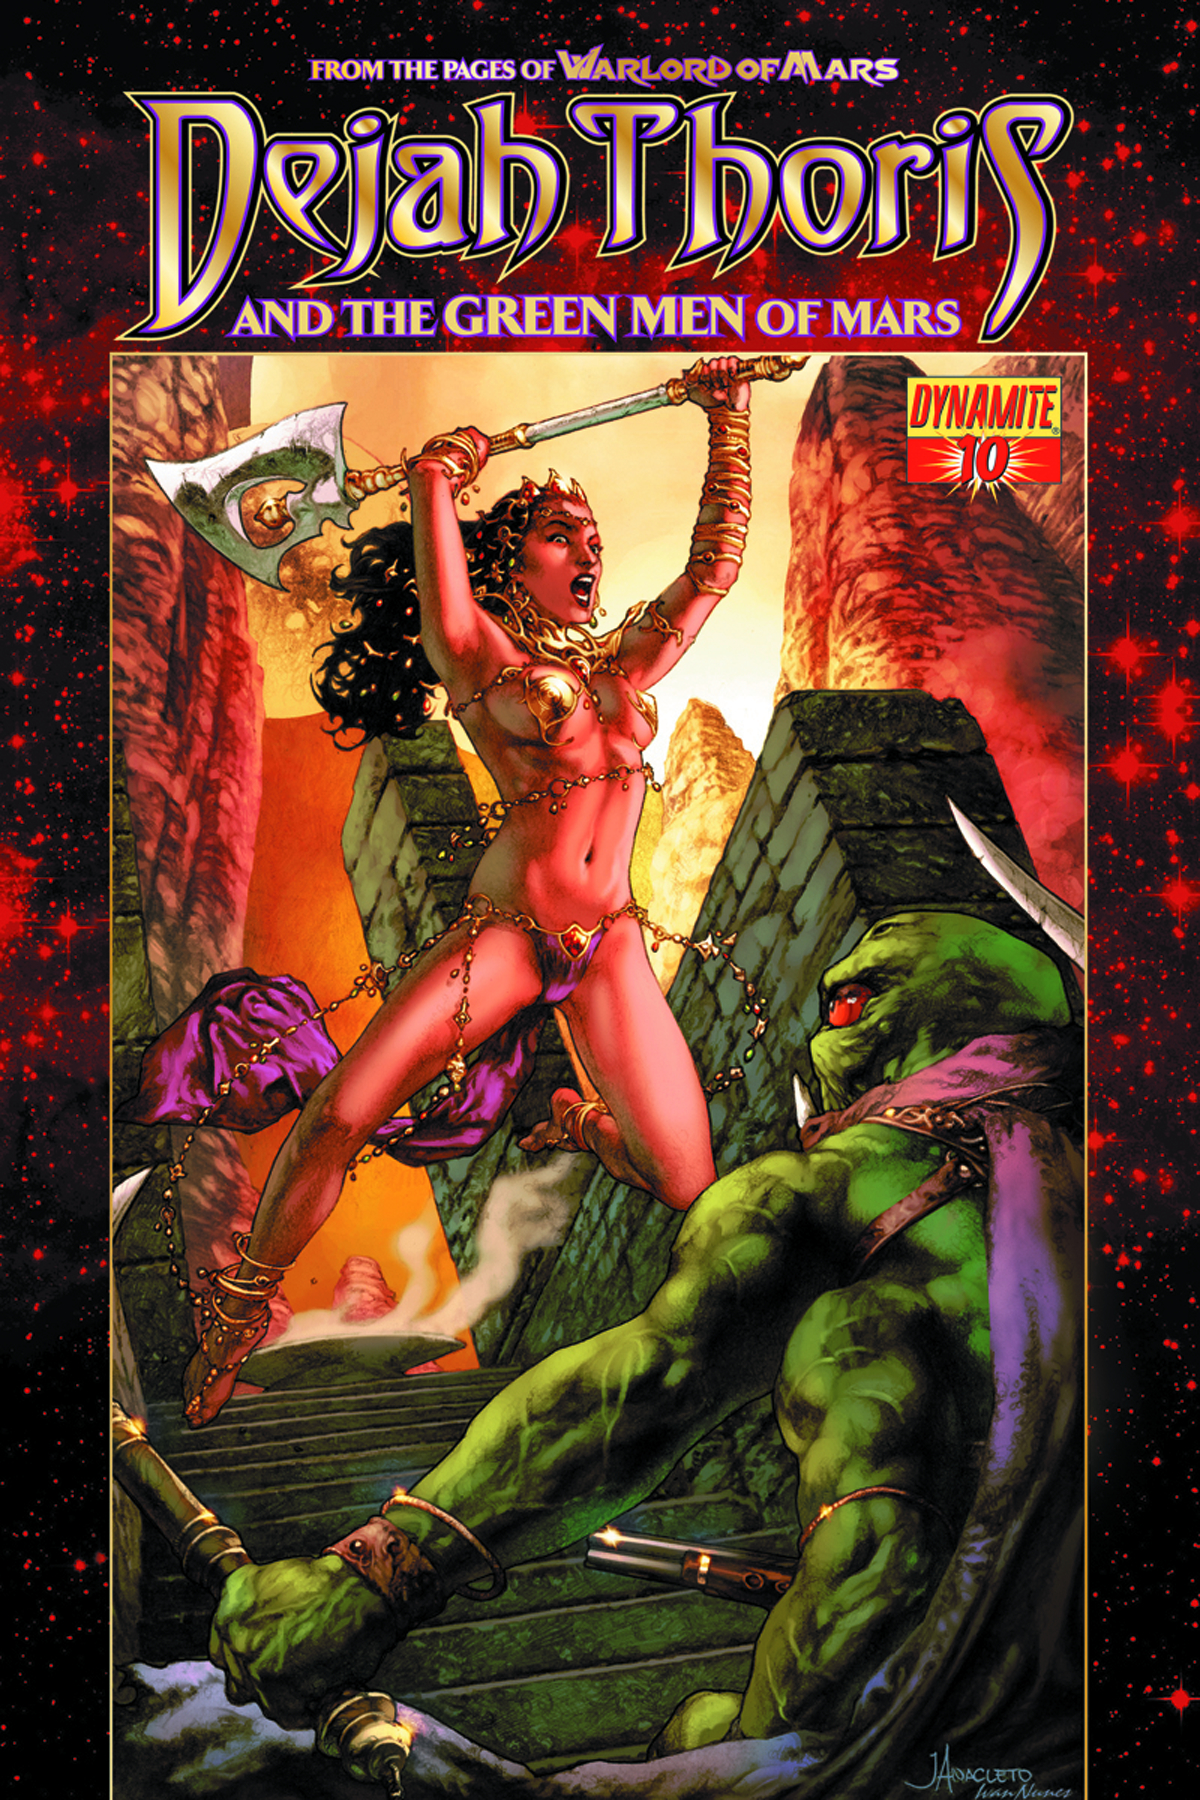 DEJAH THORIS & GREEN MEN OF MARS #10 (OF 12)